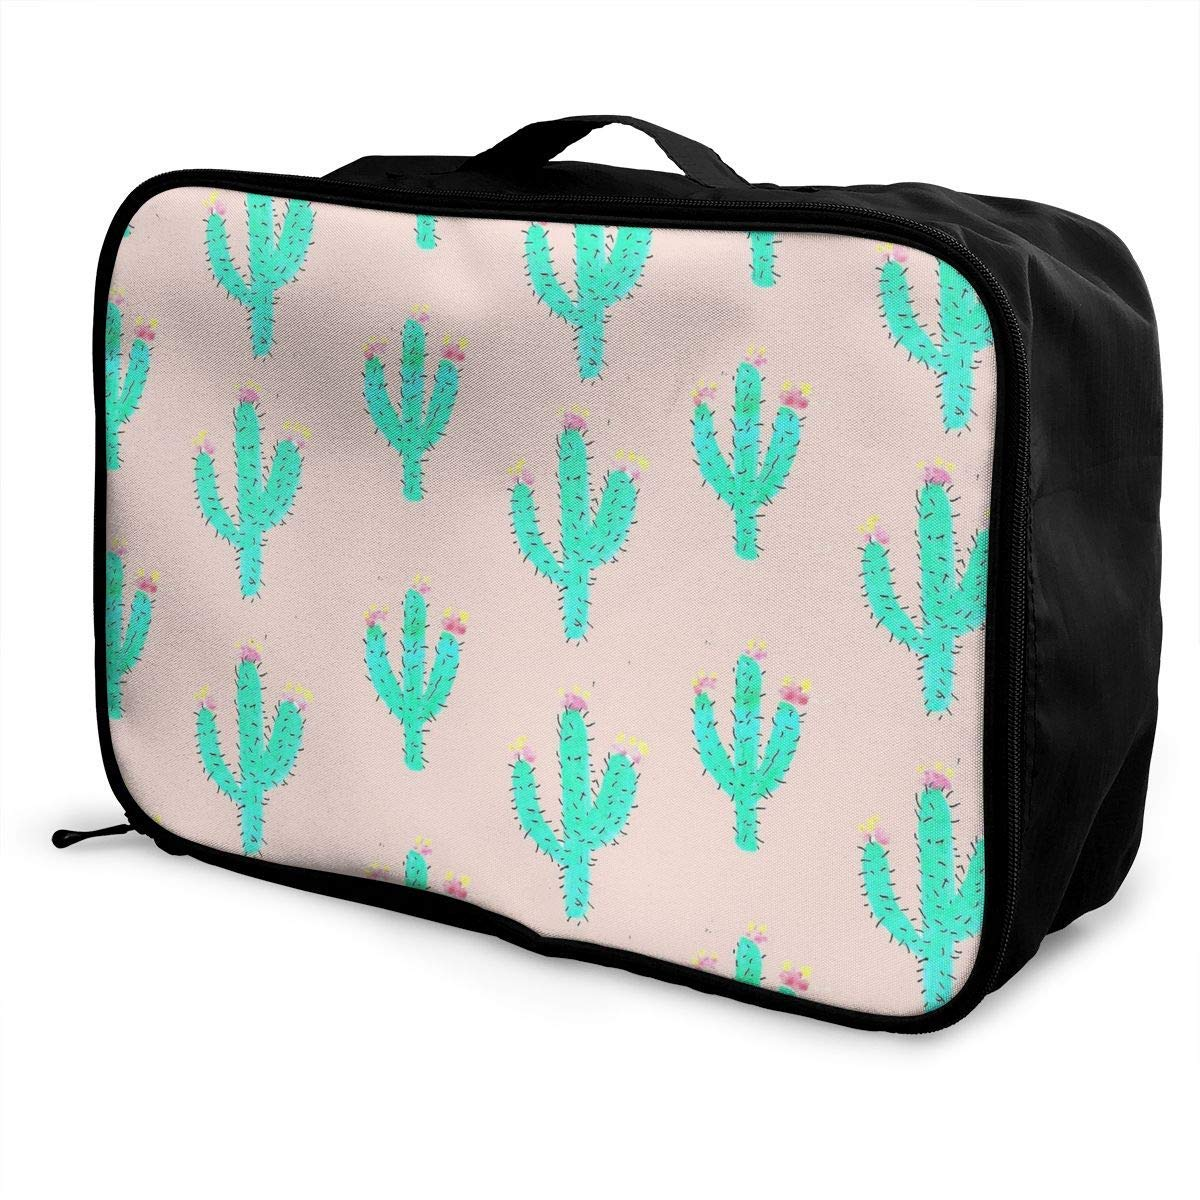 JTRVW Luggage Bags for Travel Bright Cactus Pink Travel Lightweight Waterproof Foldable Storage Carry Luggage Duffle Tote Bag